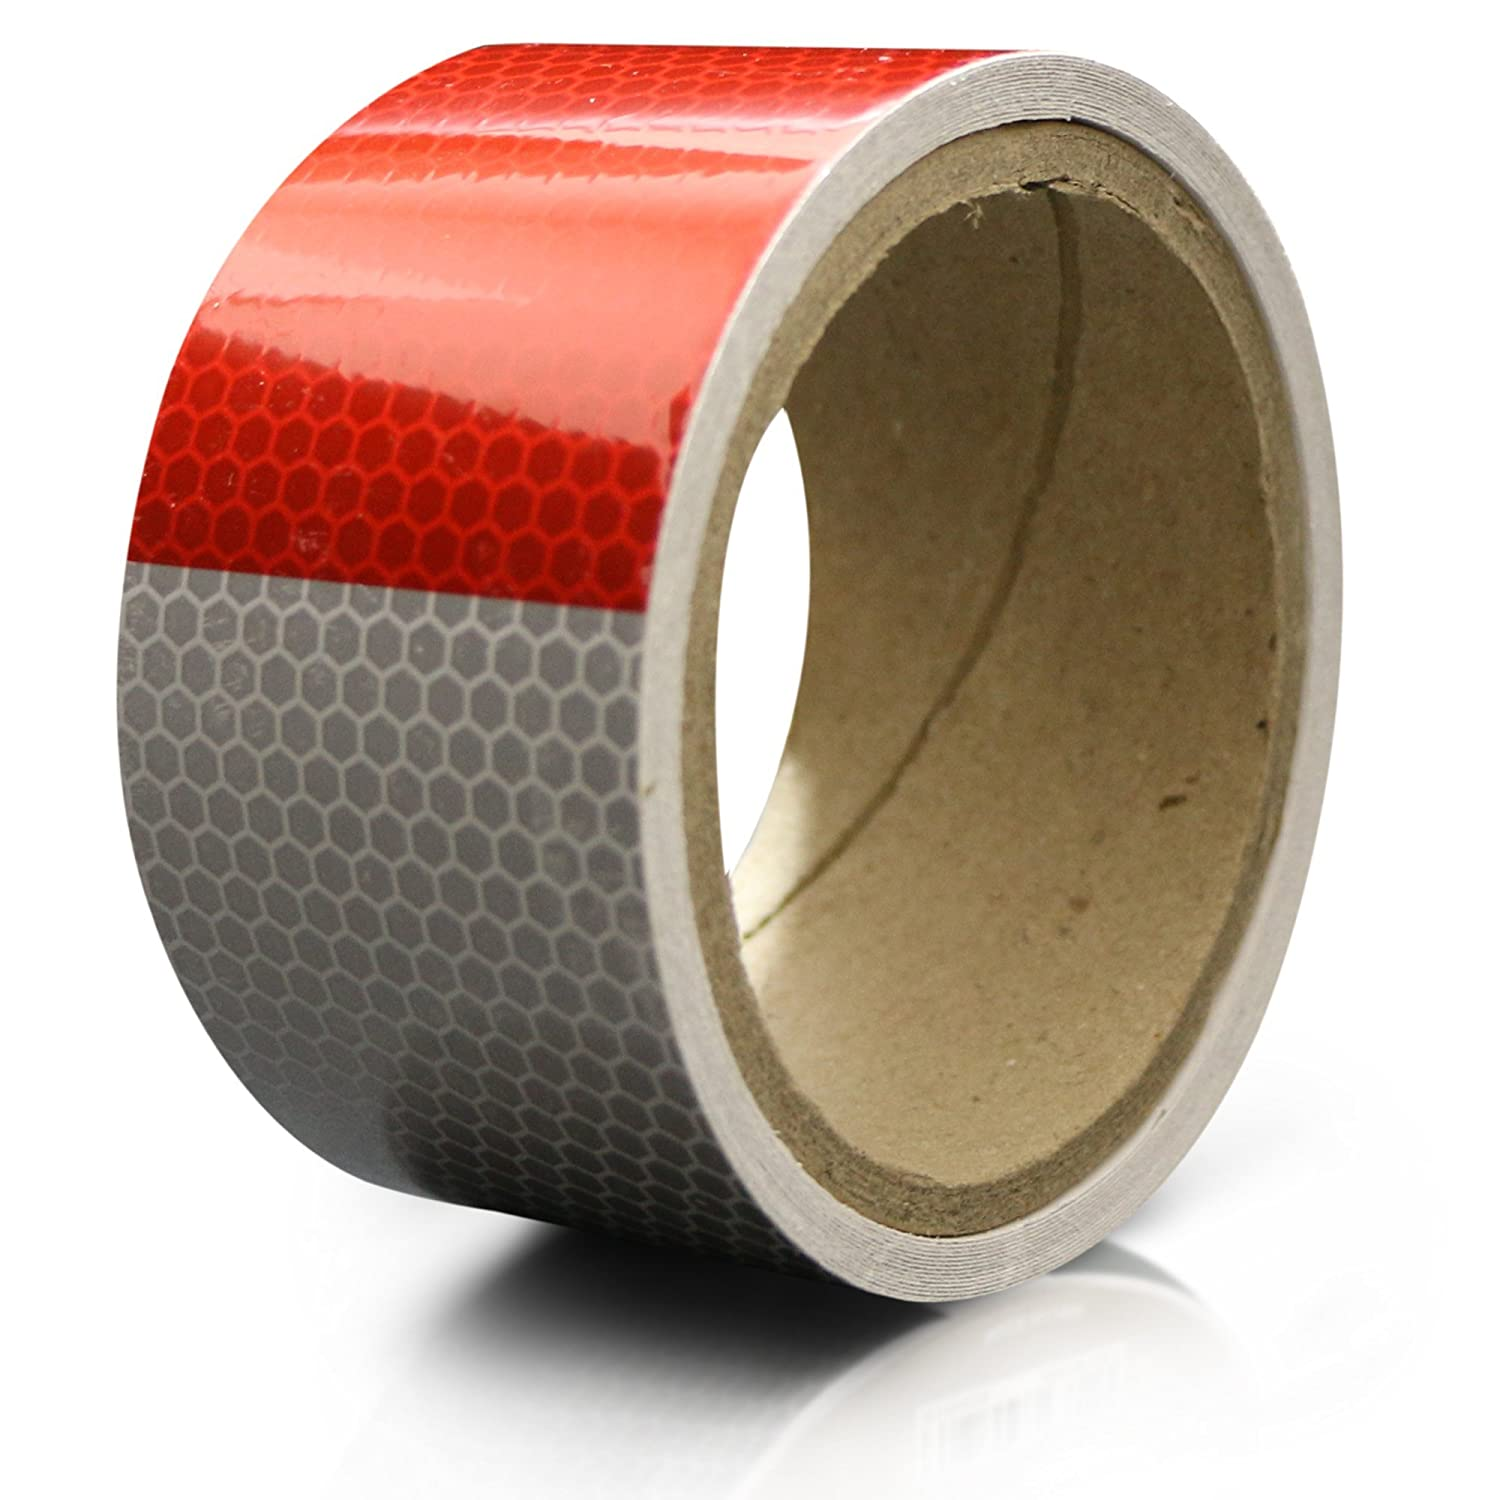 XFasten Reflective Tape Red White 2 Inches by 5 Yards